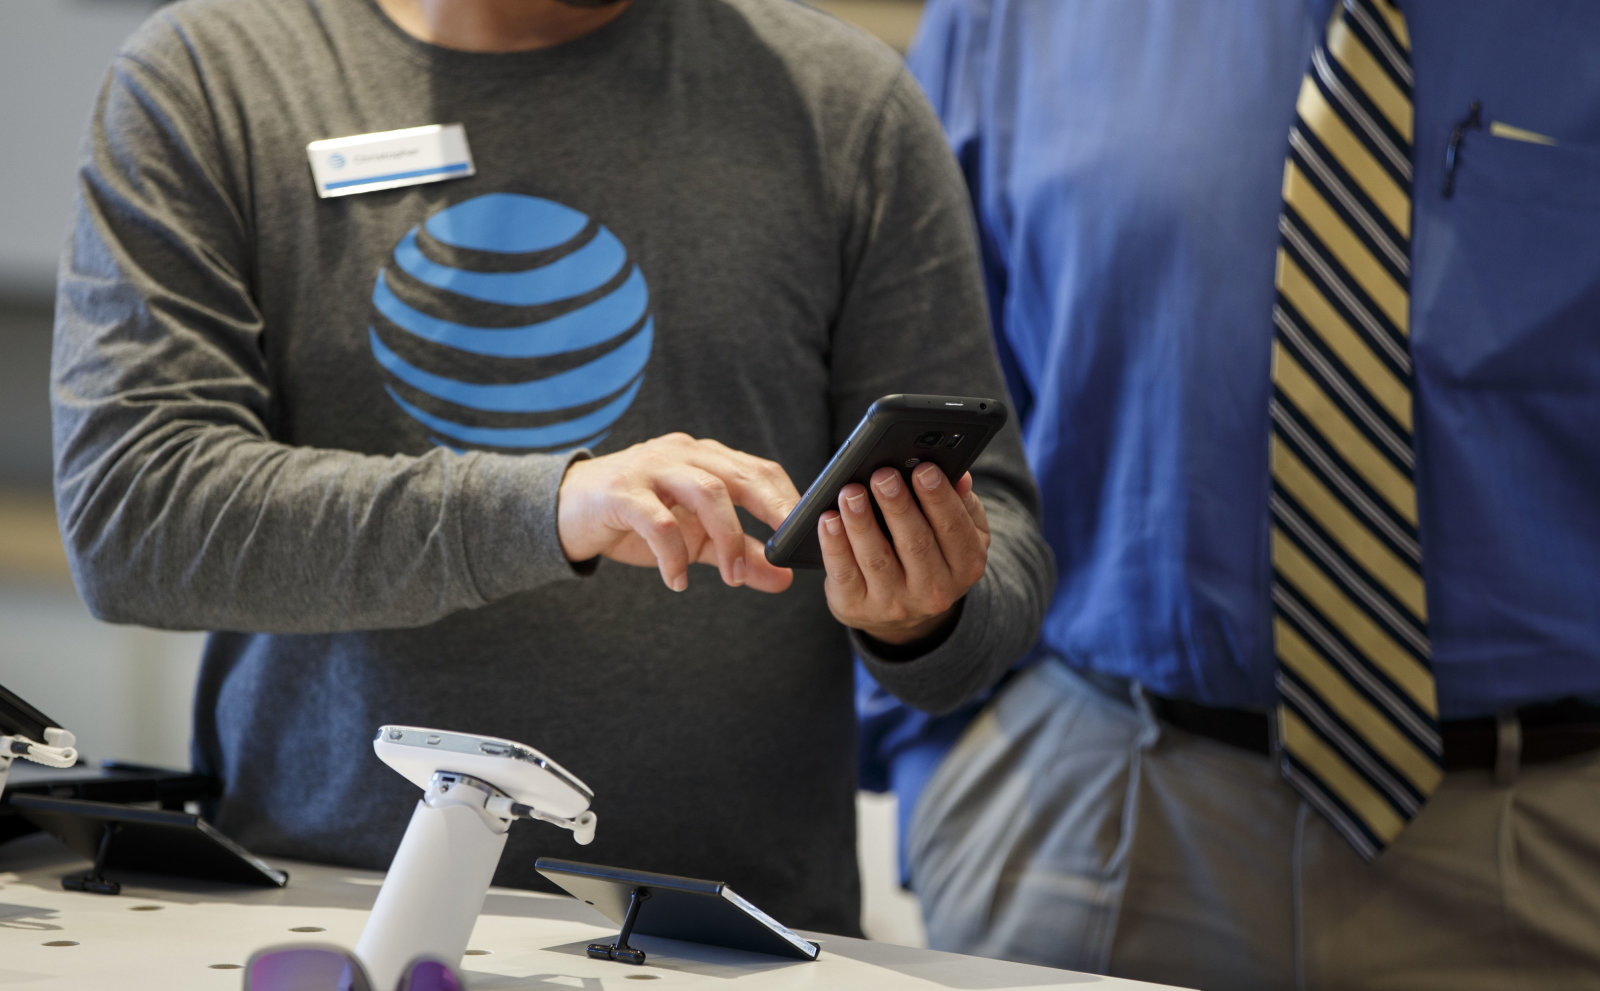 An employee helps a customer with a smartphone at an AT&T Inc. store in Newport Beach, California, U.S., on Thursday, Aug. 10, 2017. AT&T Inc. shares surged the most in more than eight years after the telecommunications giant posted a surprise wireless subscriber gain in the second quarter, showing it can fend for itself in a cutthroat price war. An offer for unlimited wireless data, bundled with discounted streaming-TV service, helping AT&T bide its time while awaiting regulatory approval to transform into a media powerhouse through the $85.4 billion purchase of Time Warner Inc. Photographer: Patrick T. Fallon/Bloomberg via Getty Images